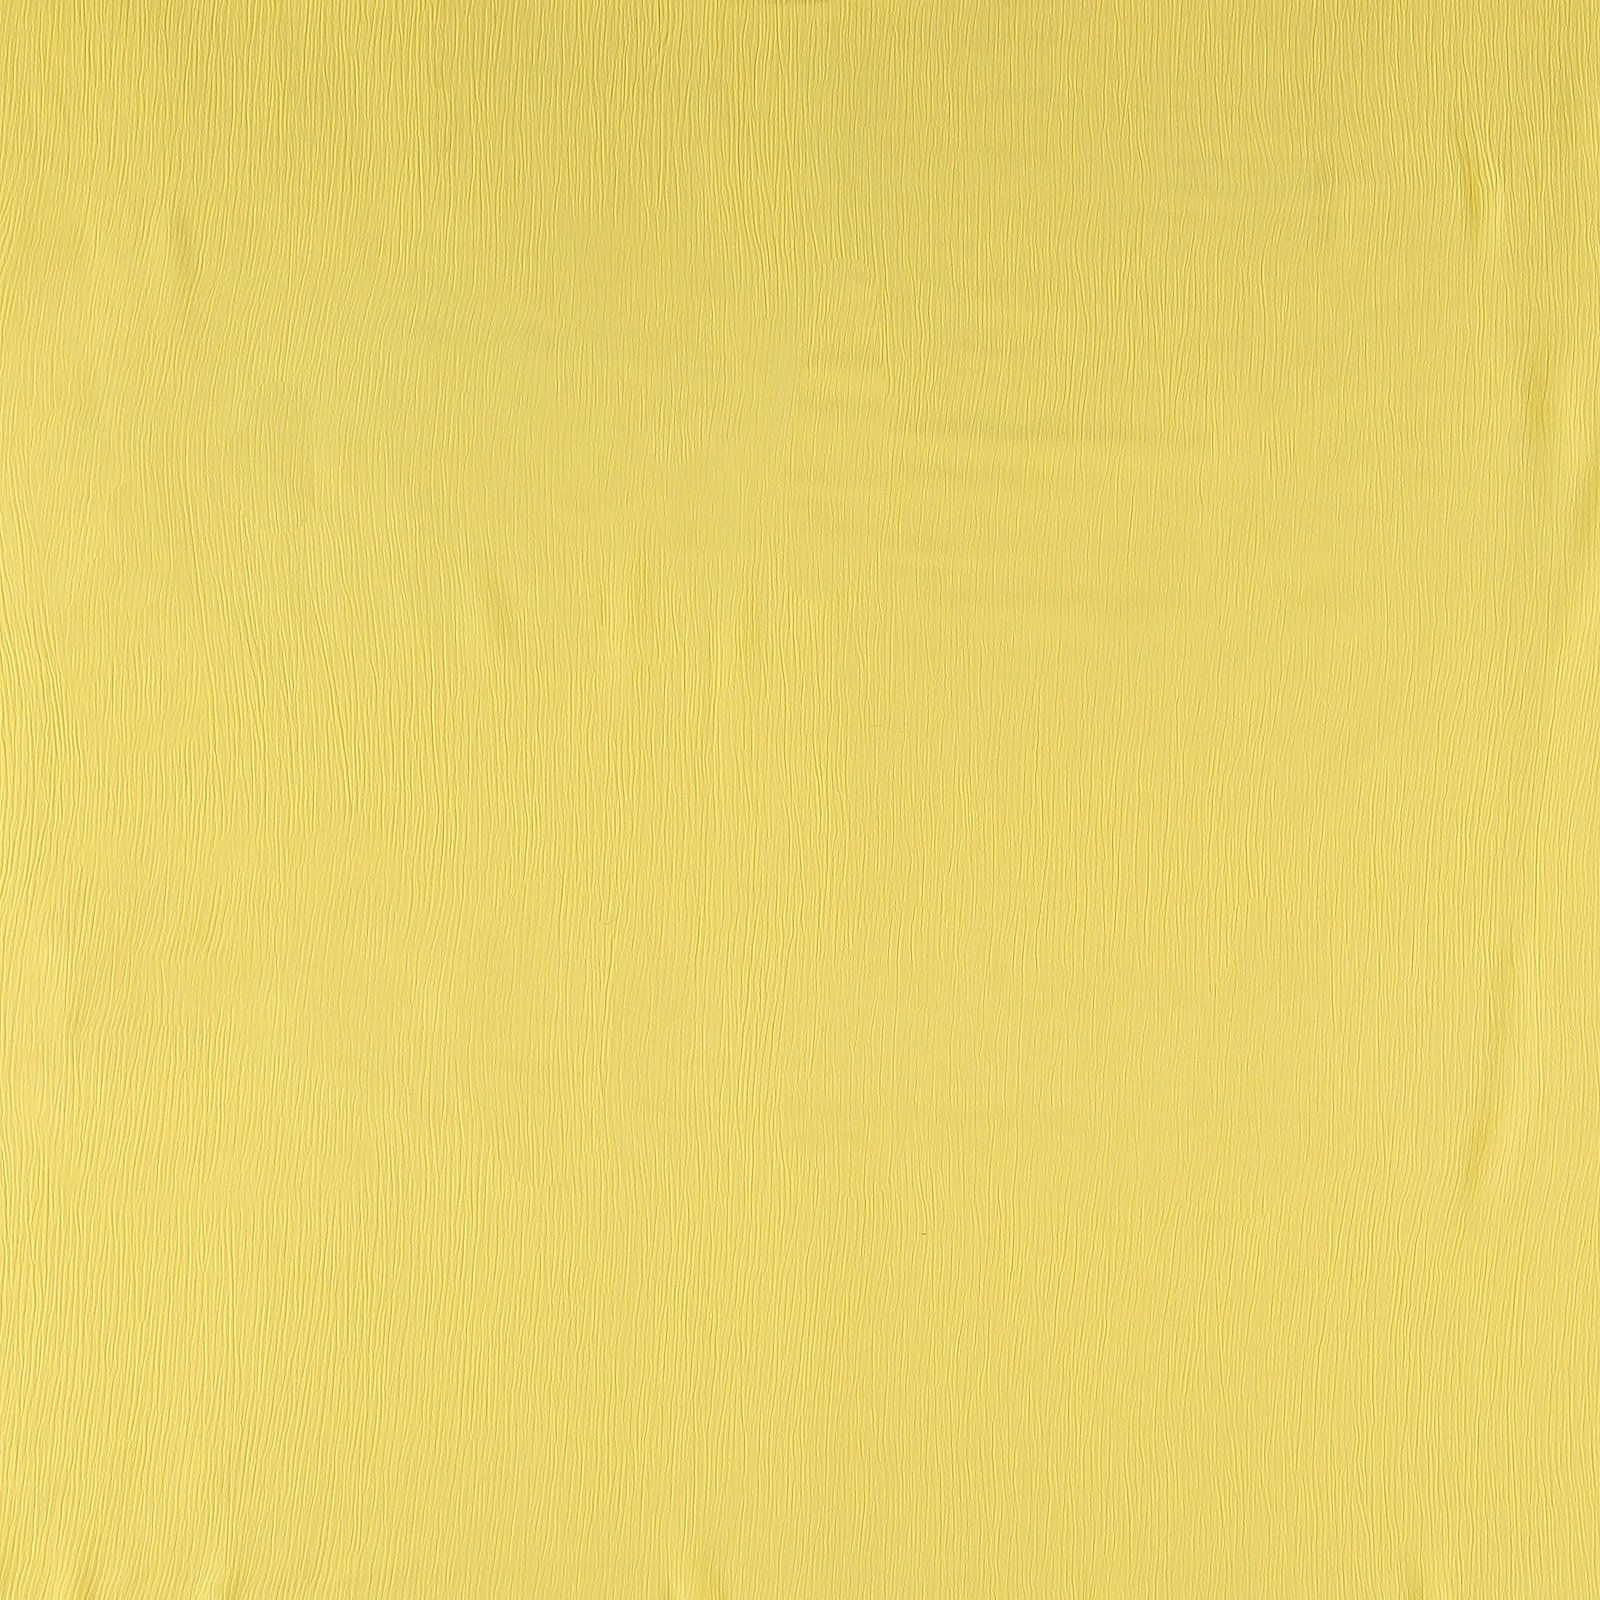 Woven crepe viscose light yellow 730445_pack_solid